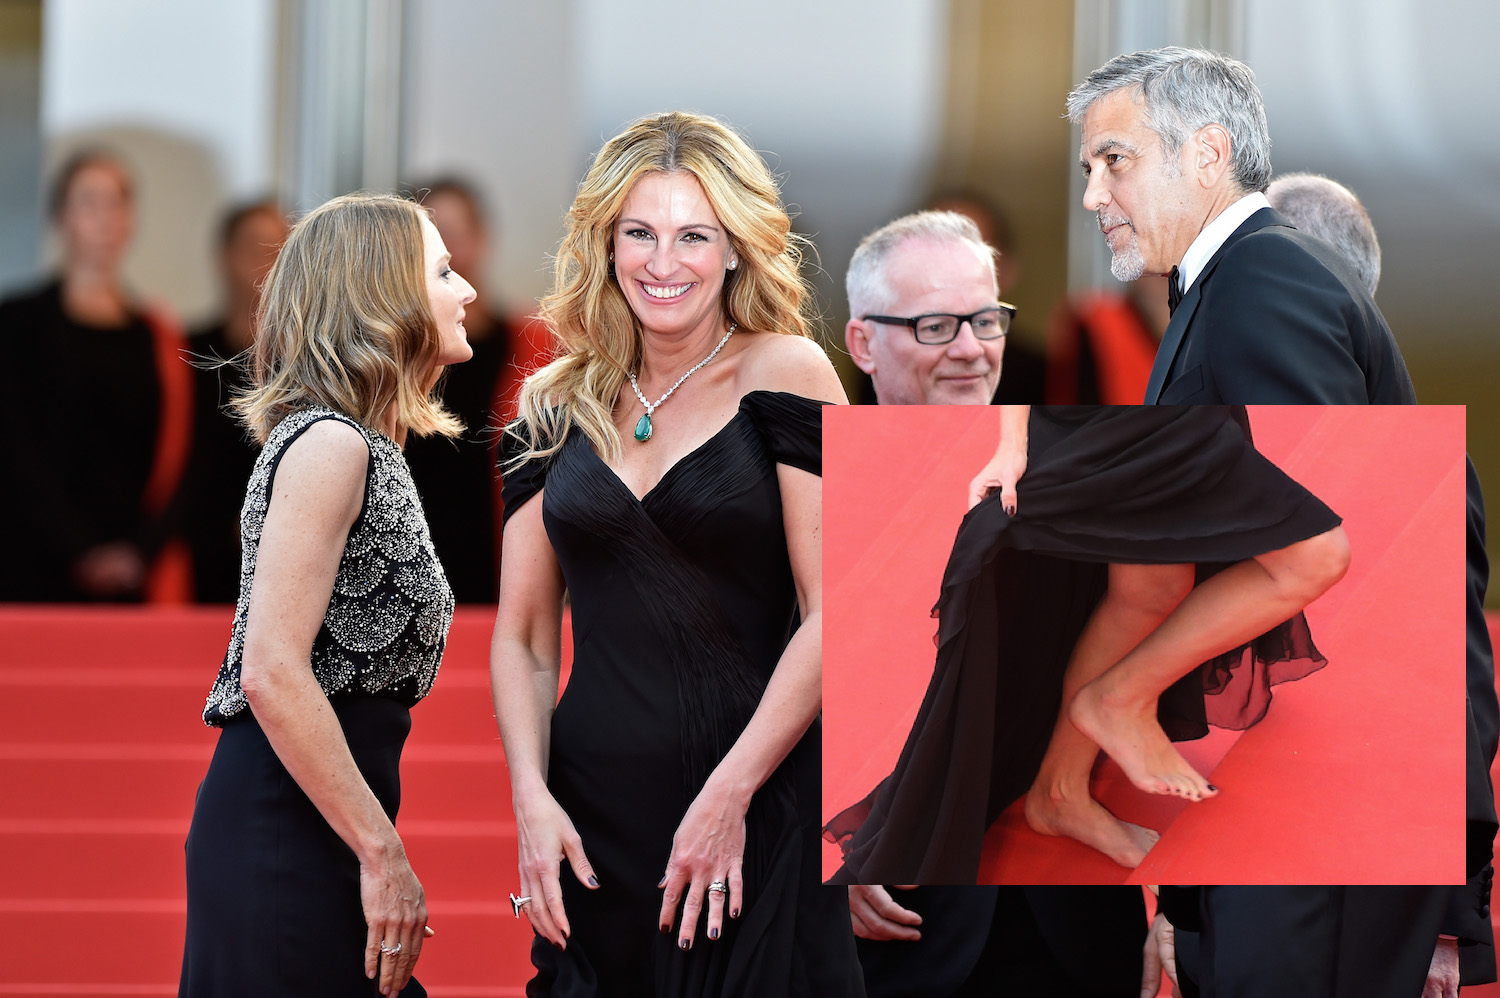 Julia roberts has an excellent reason for wearing no shoes on the julia roberts has an excellent reason for wearing no shoes on the cannes red carpet pinknews voltagebd Choice Image